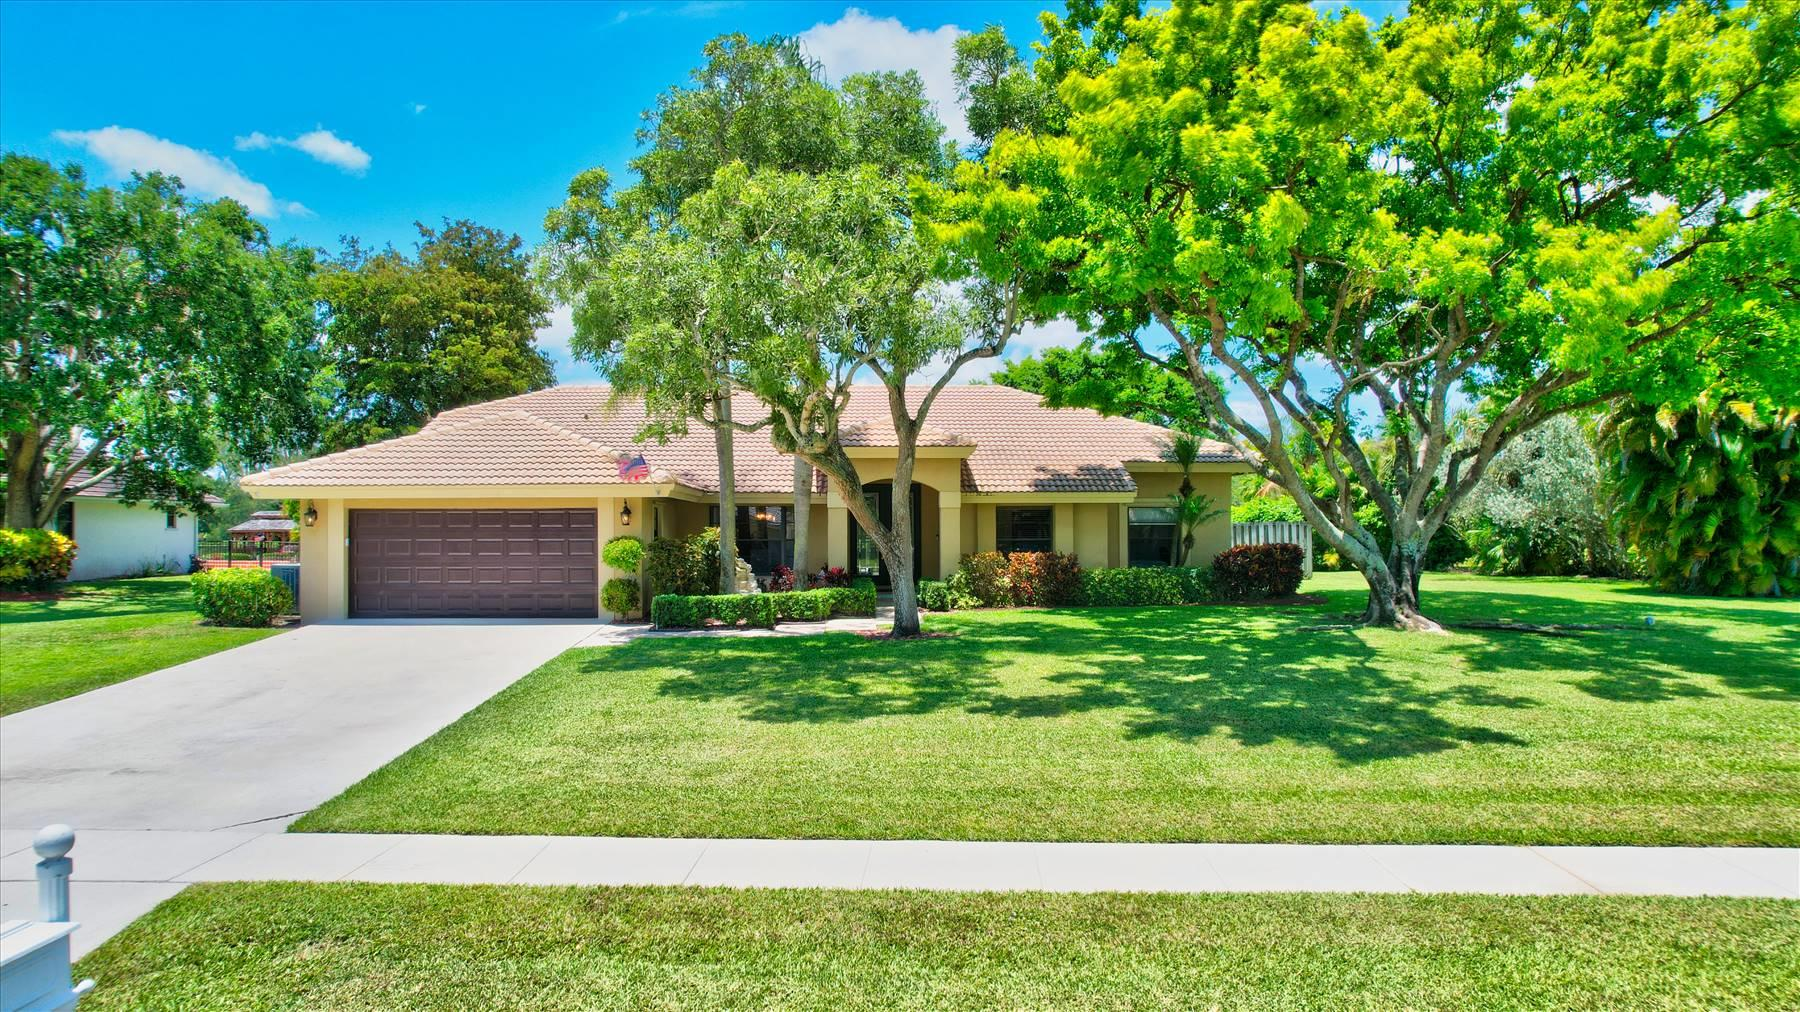 21334  Sweetwater Lane  For Sale 10719631, FL